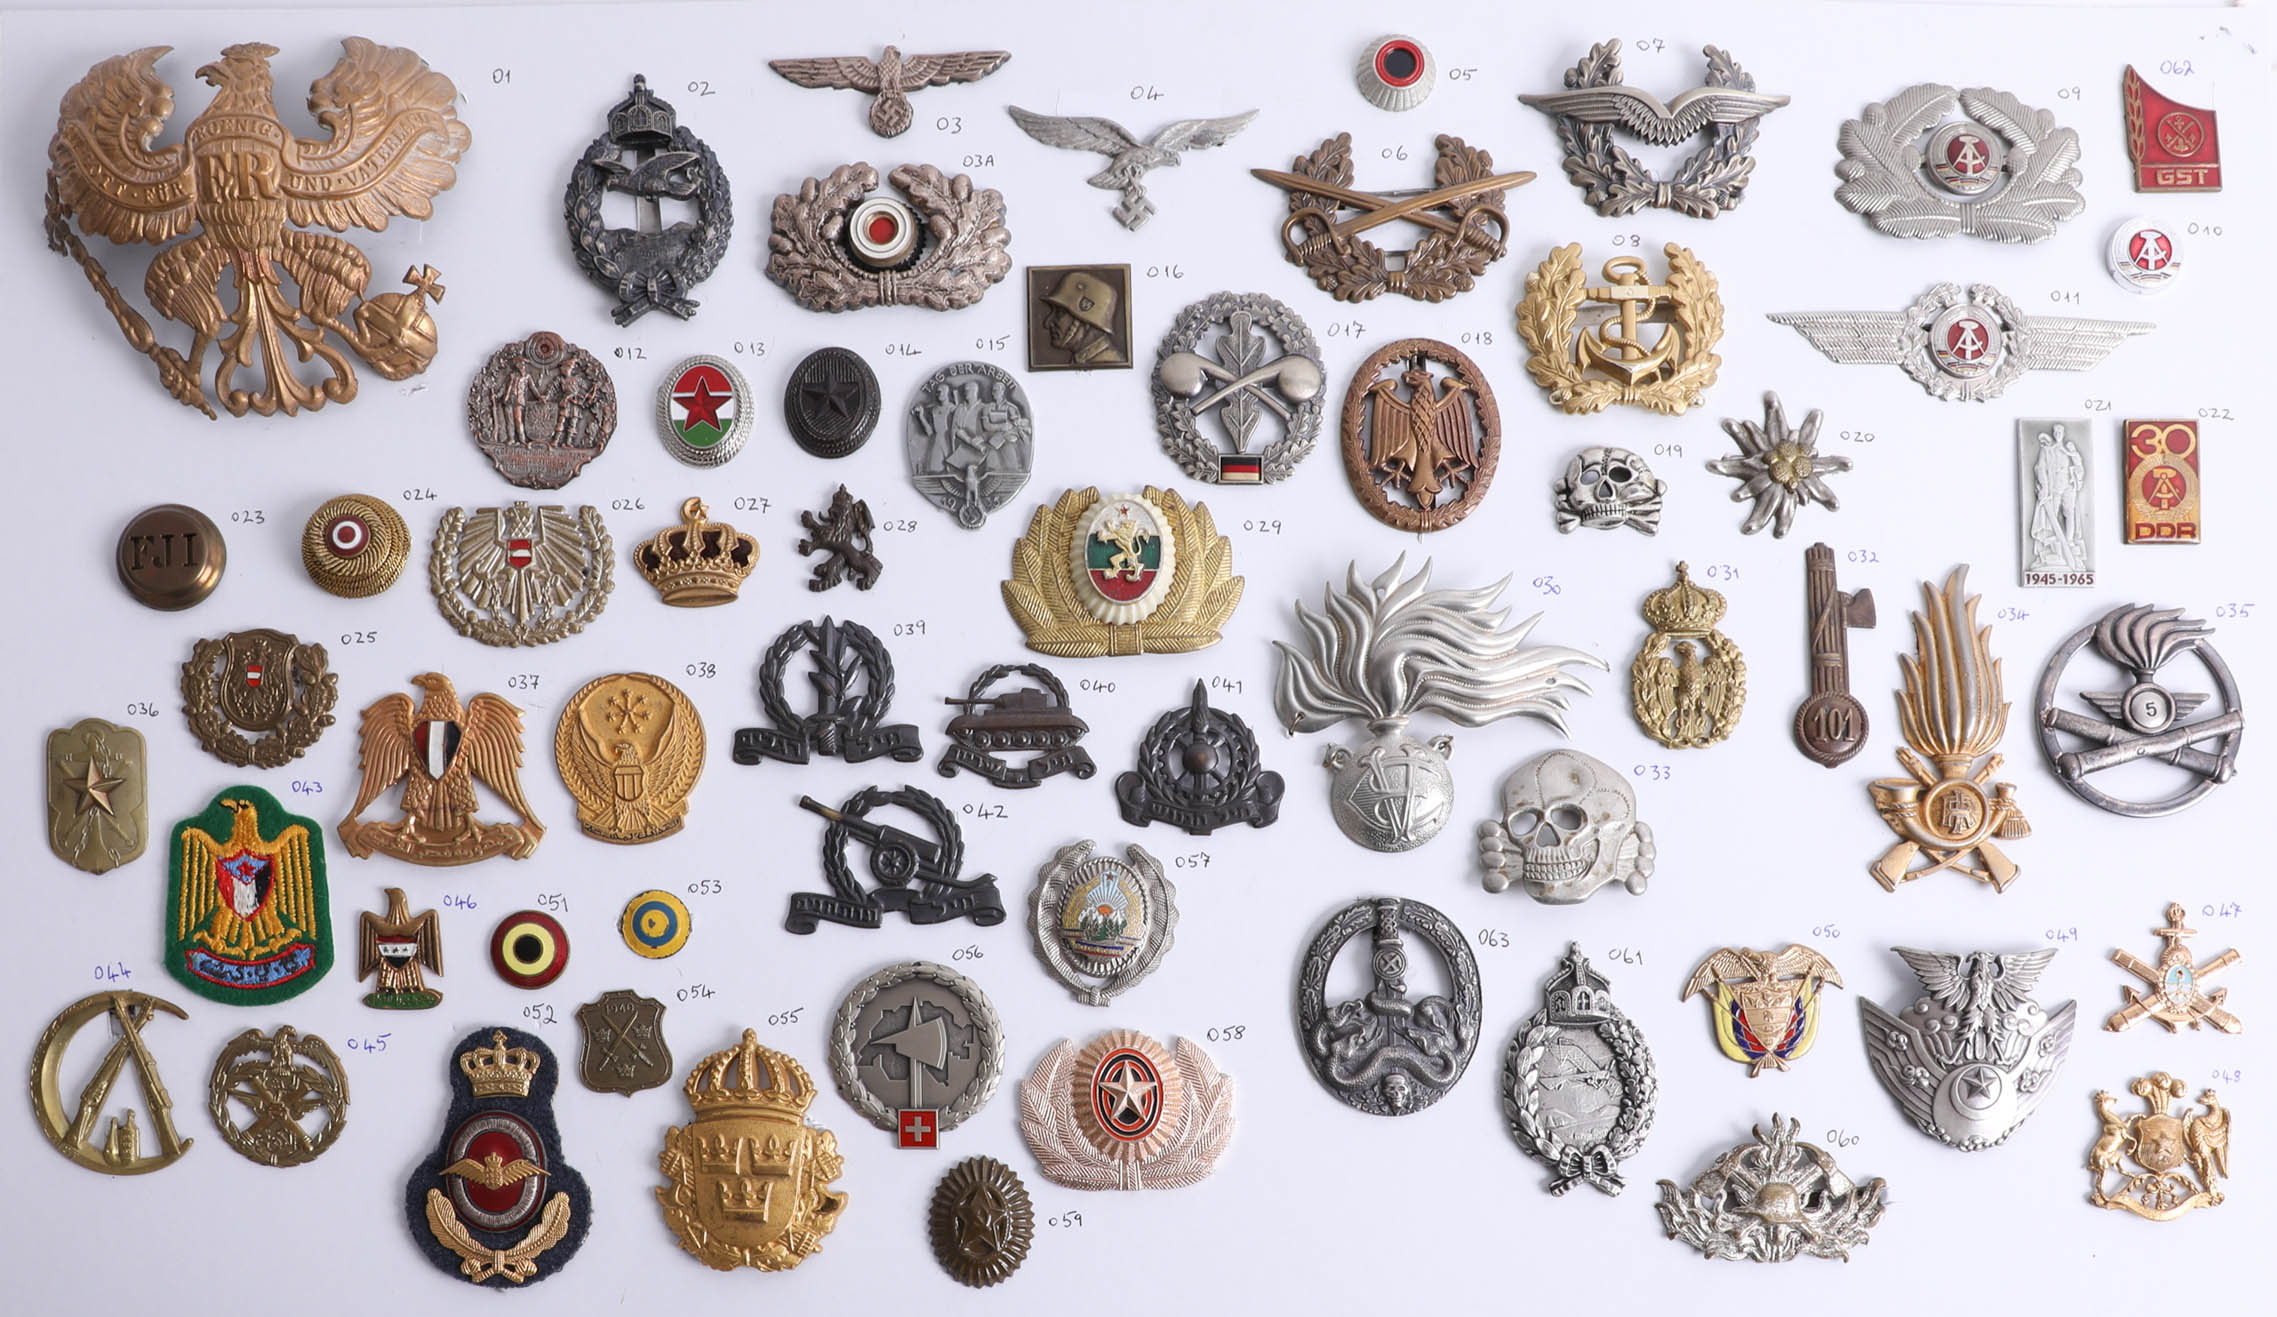 Lot 017 - A collection of approx. 52 miscellaneous interesting and decorative military cap and other badges